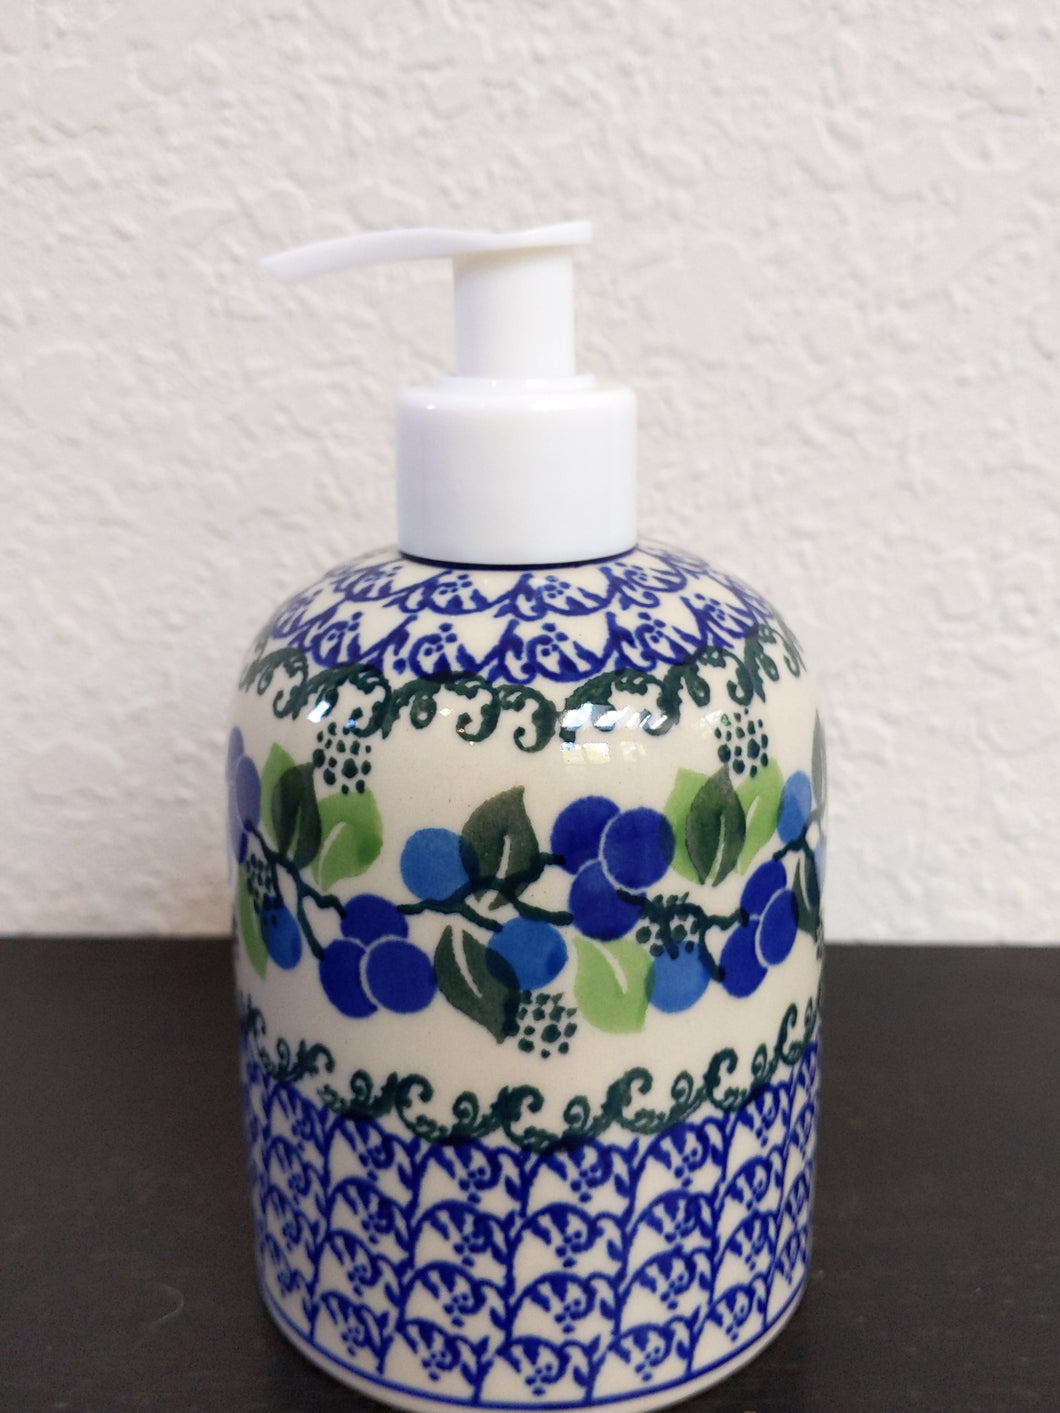 Blueberry soap dispenser